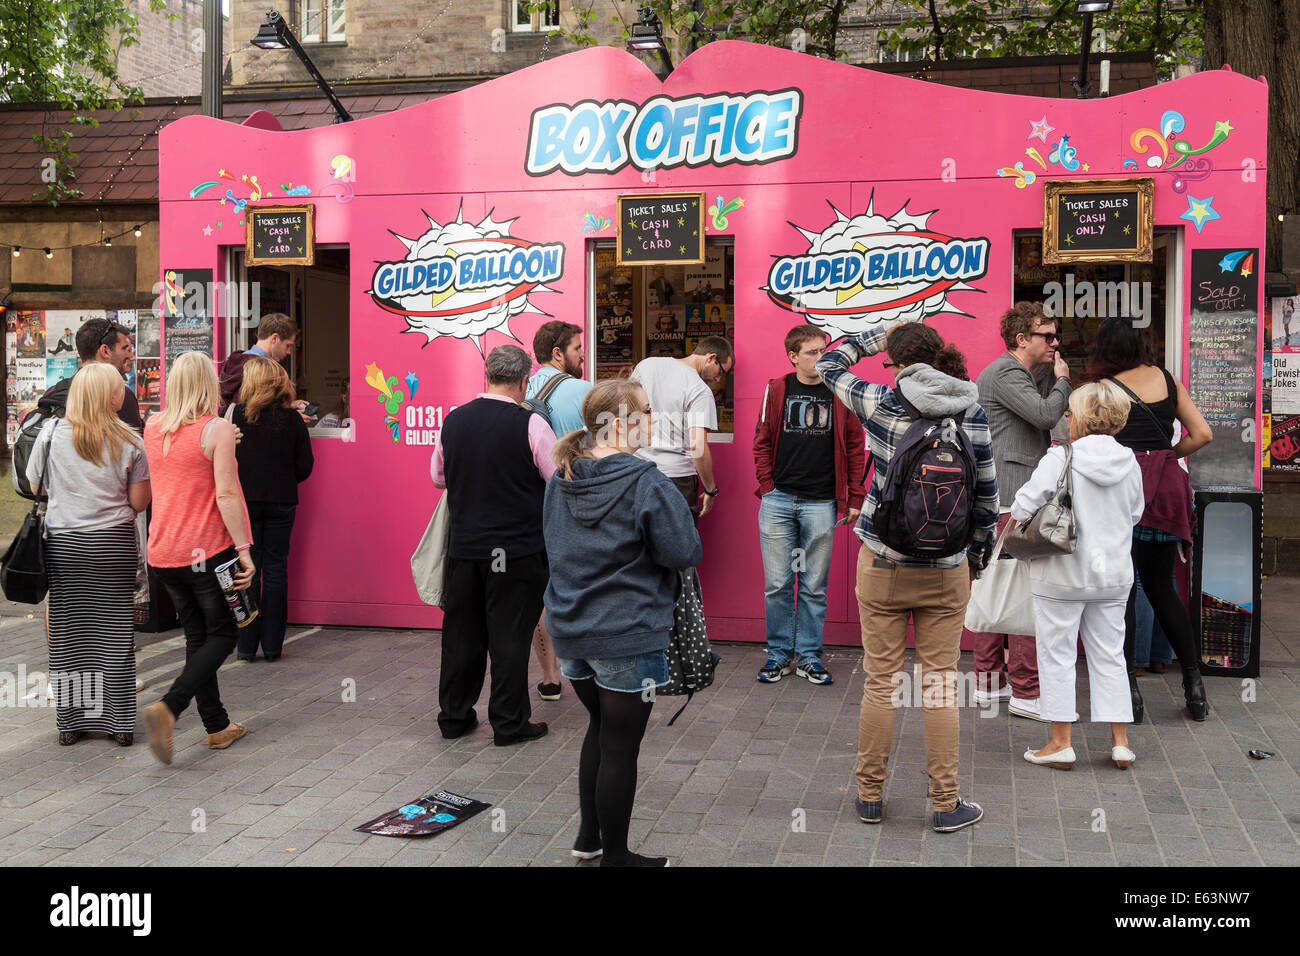 edinburgh fringe festival box office. People Queueing Up For Tickets At The Box Office Gilded Balloon Venues In Bristo Square During Edinburgh Festival Fringe I